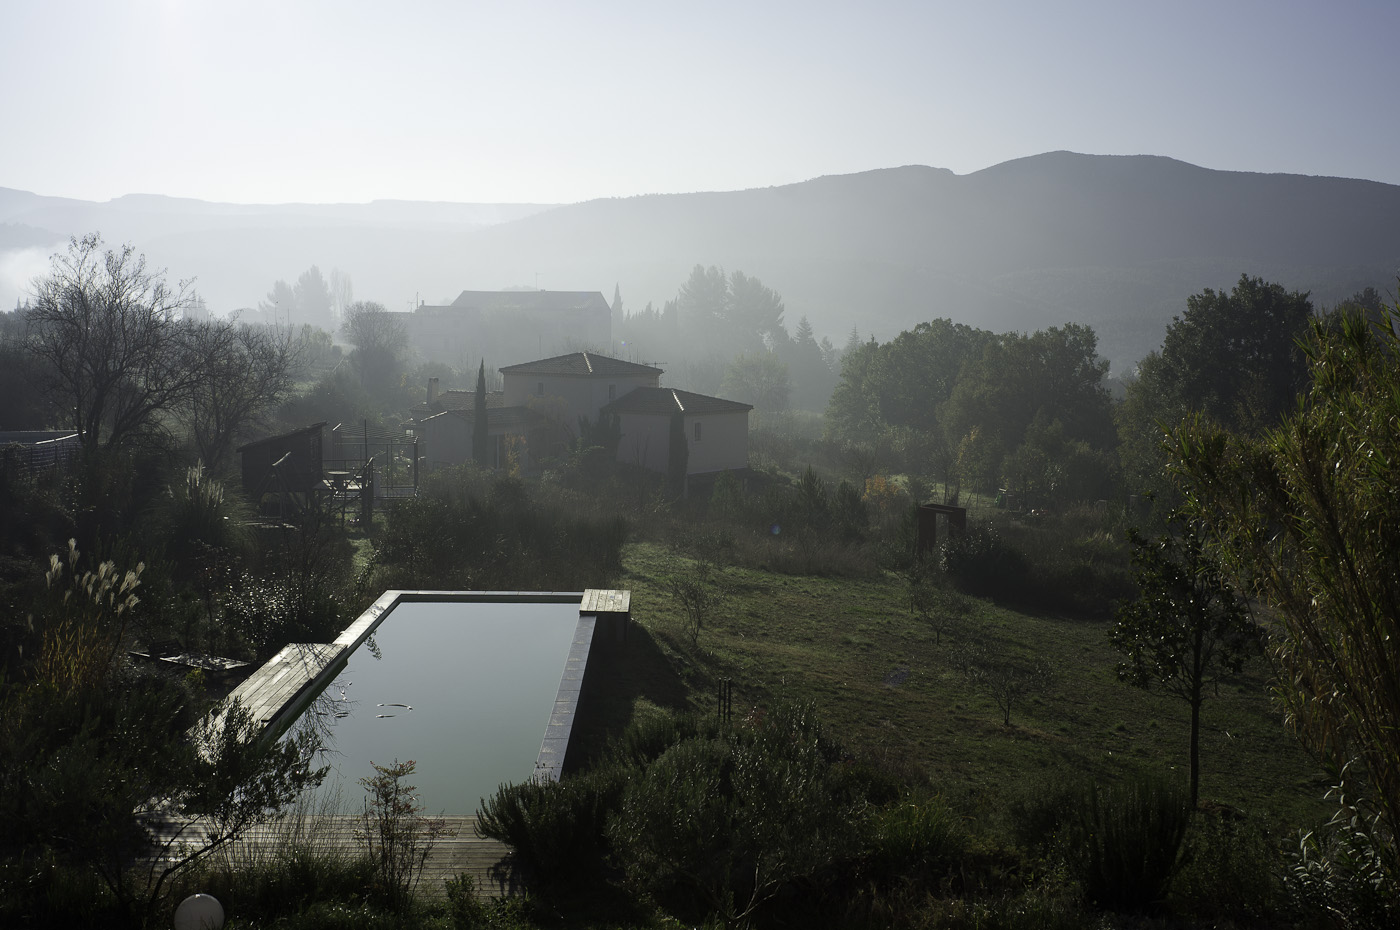 A morning mist rises over the hills in Provence, Sony NEX-5N & Zeiss Contax Planar T* 50/1.7